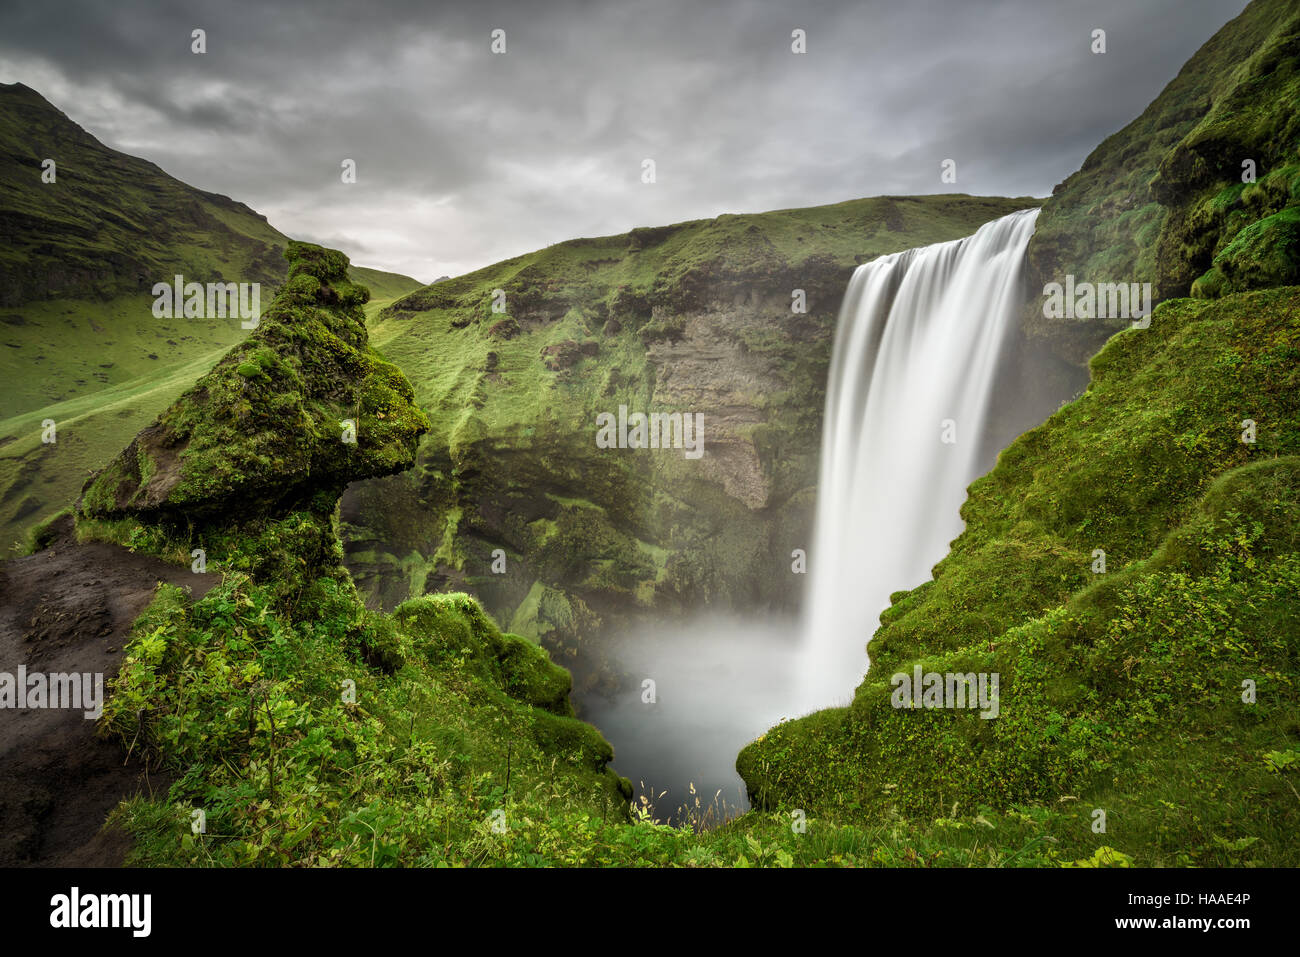 Skogafoss waterfall in southern Iceland viewed from above. Long exposure. - Stock Image